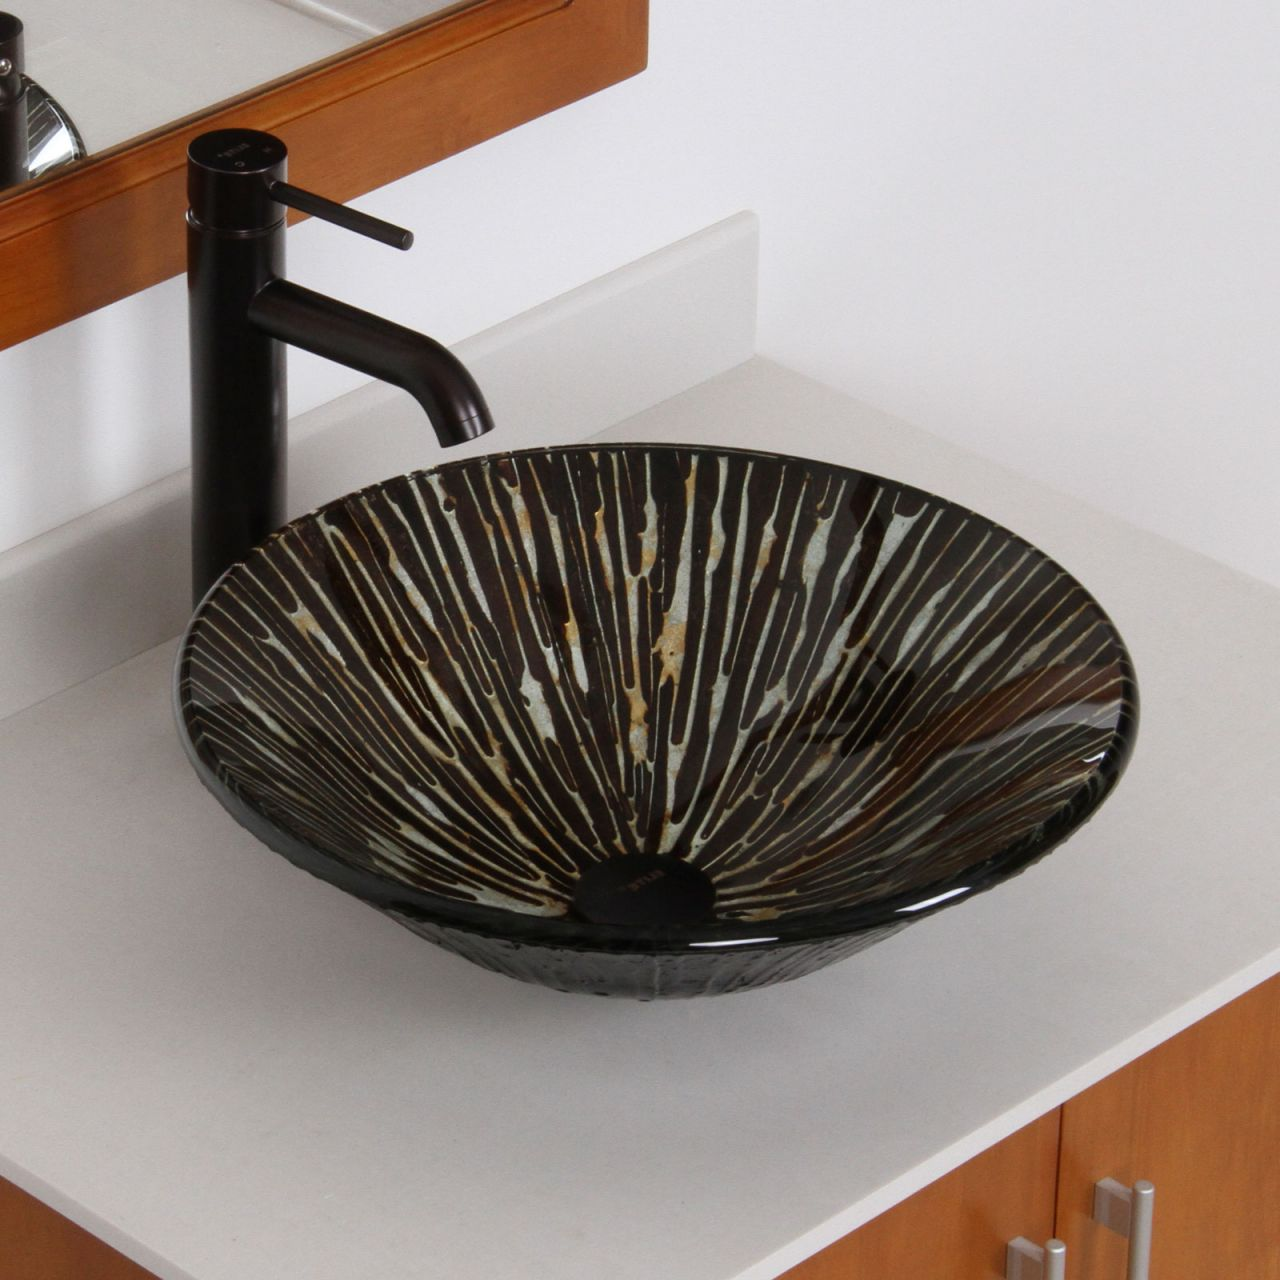 Antique Modern Undermount Sink Design